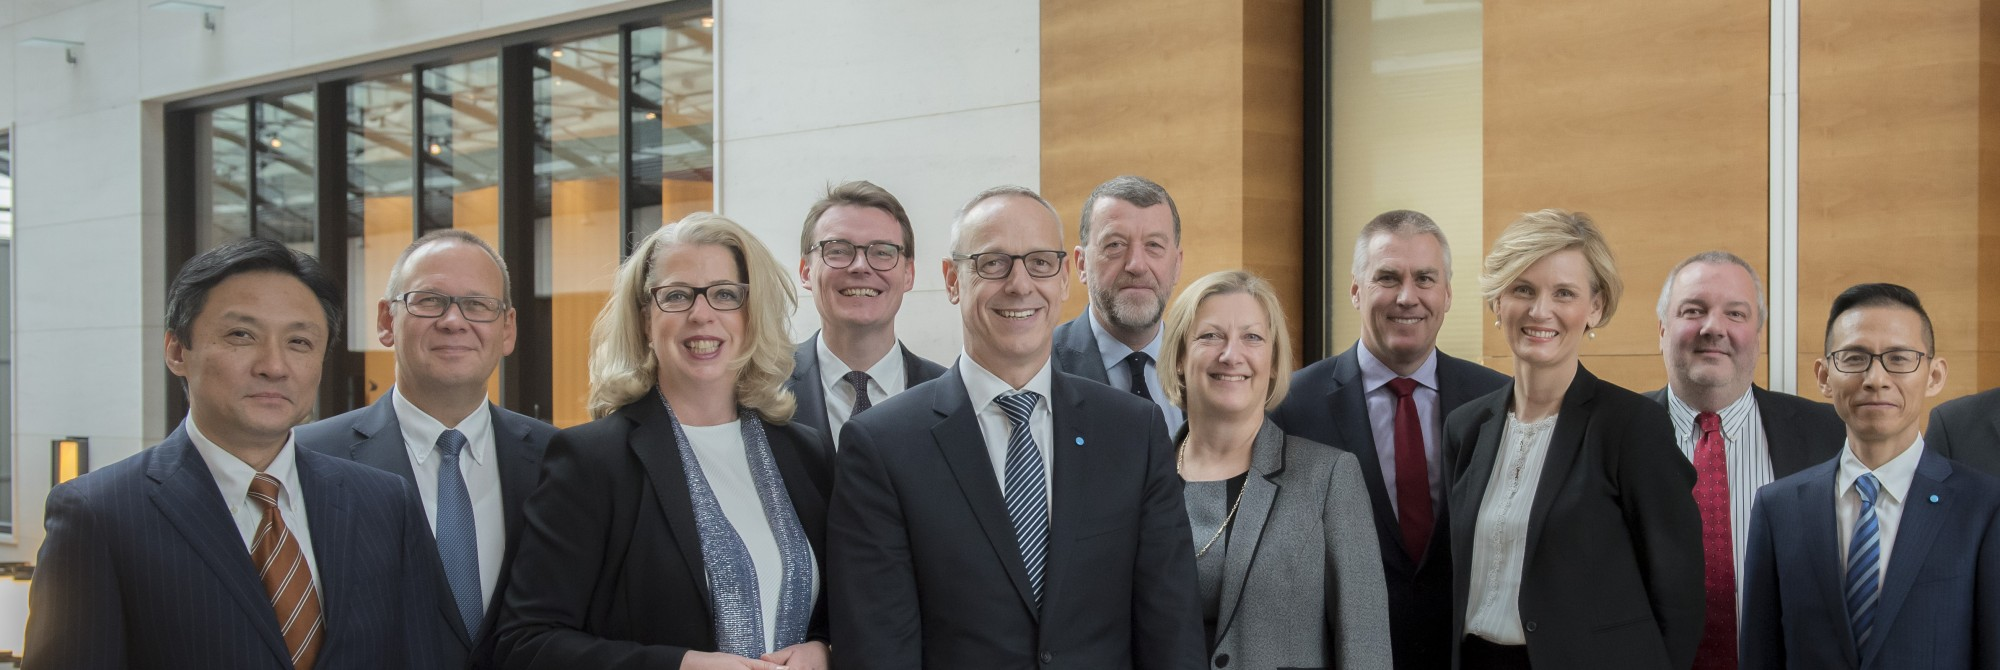 thyssenkrupp materials trading - management team